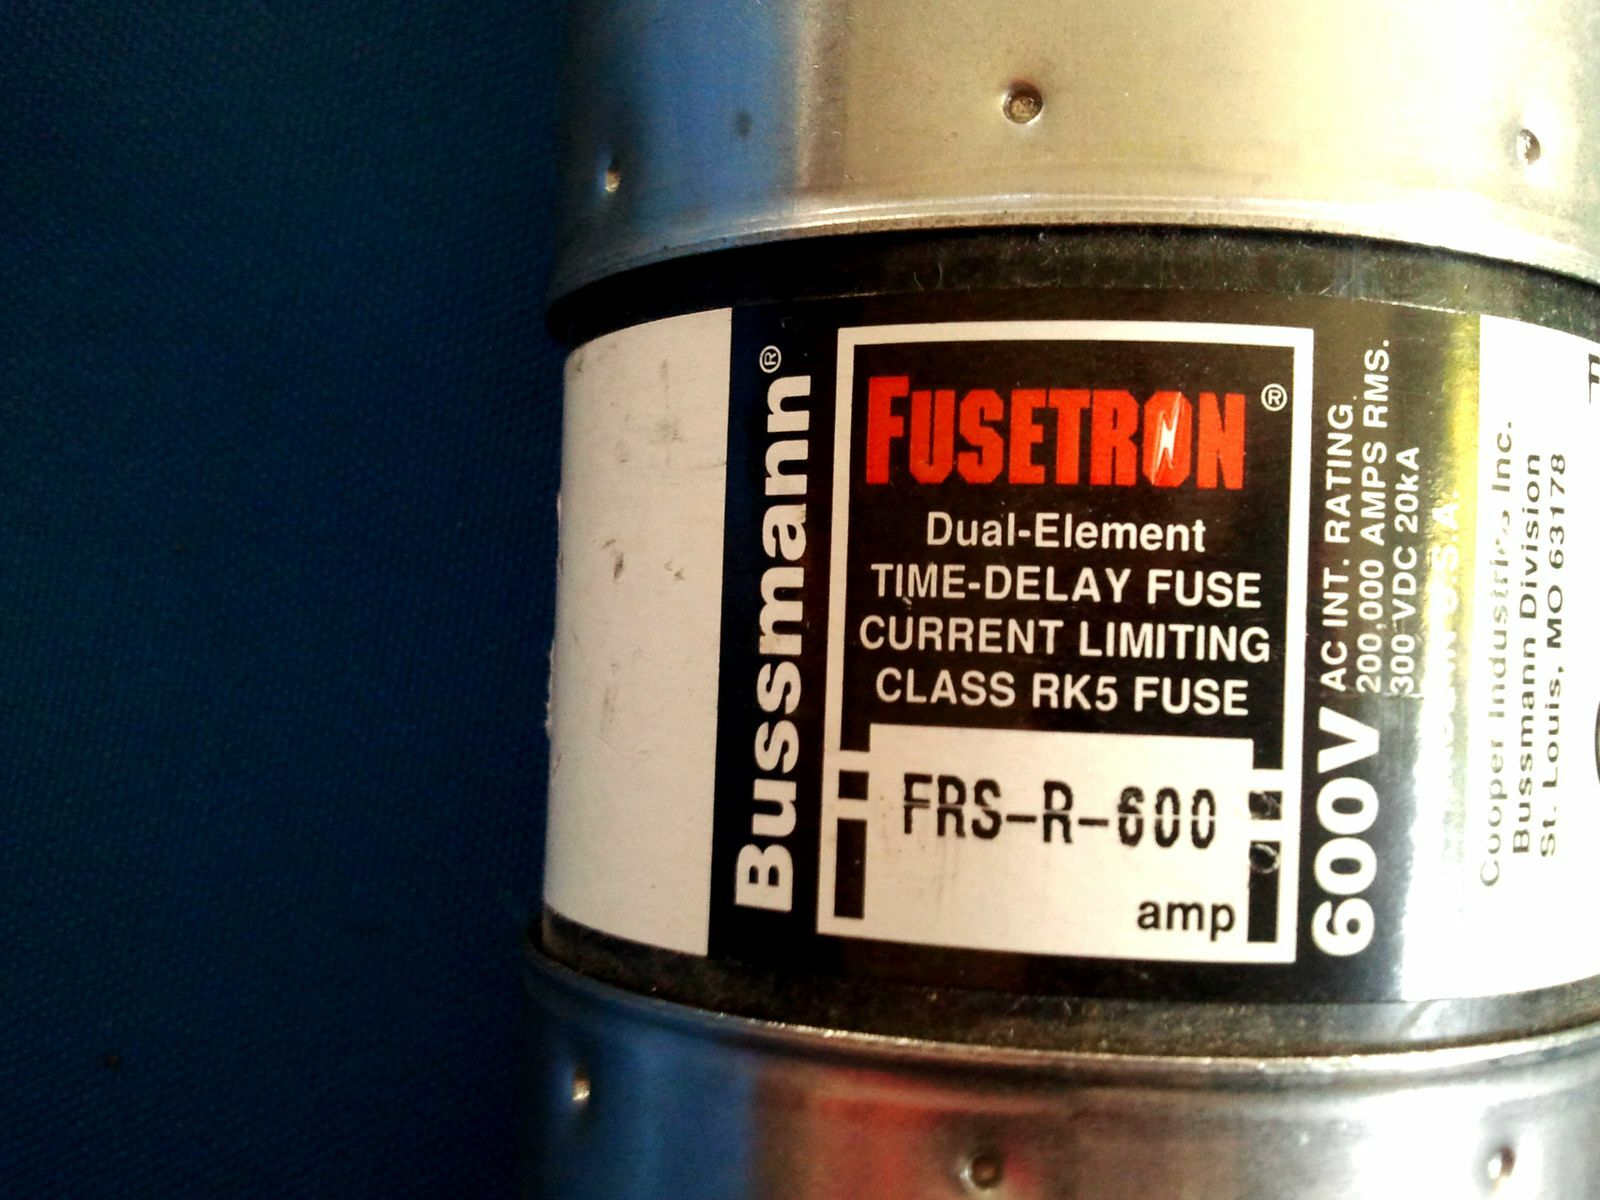 Bussmann 600a 600 Amp Fusetron Fuse 600vac Frs R Ebay Box Stock Photo